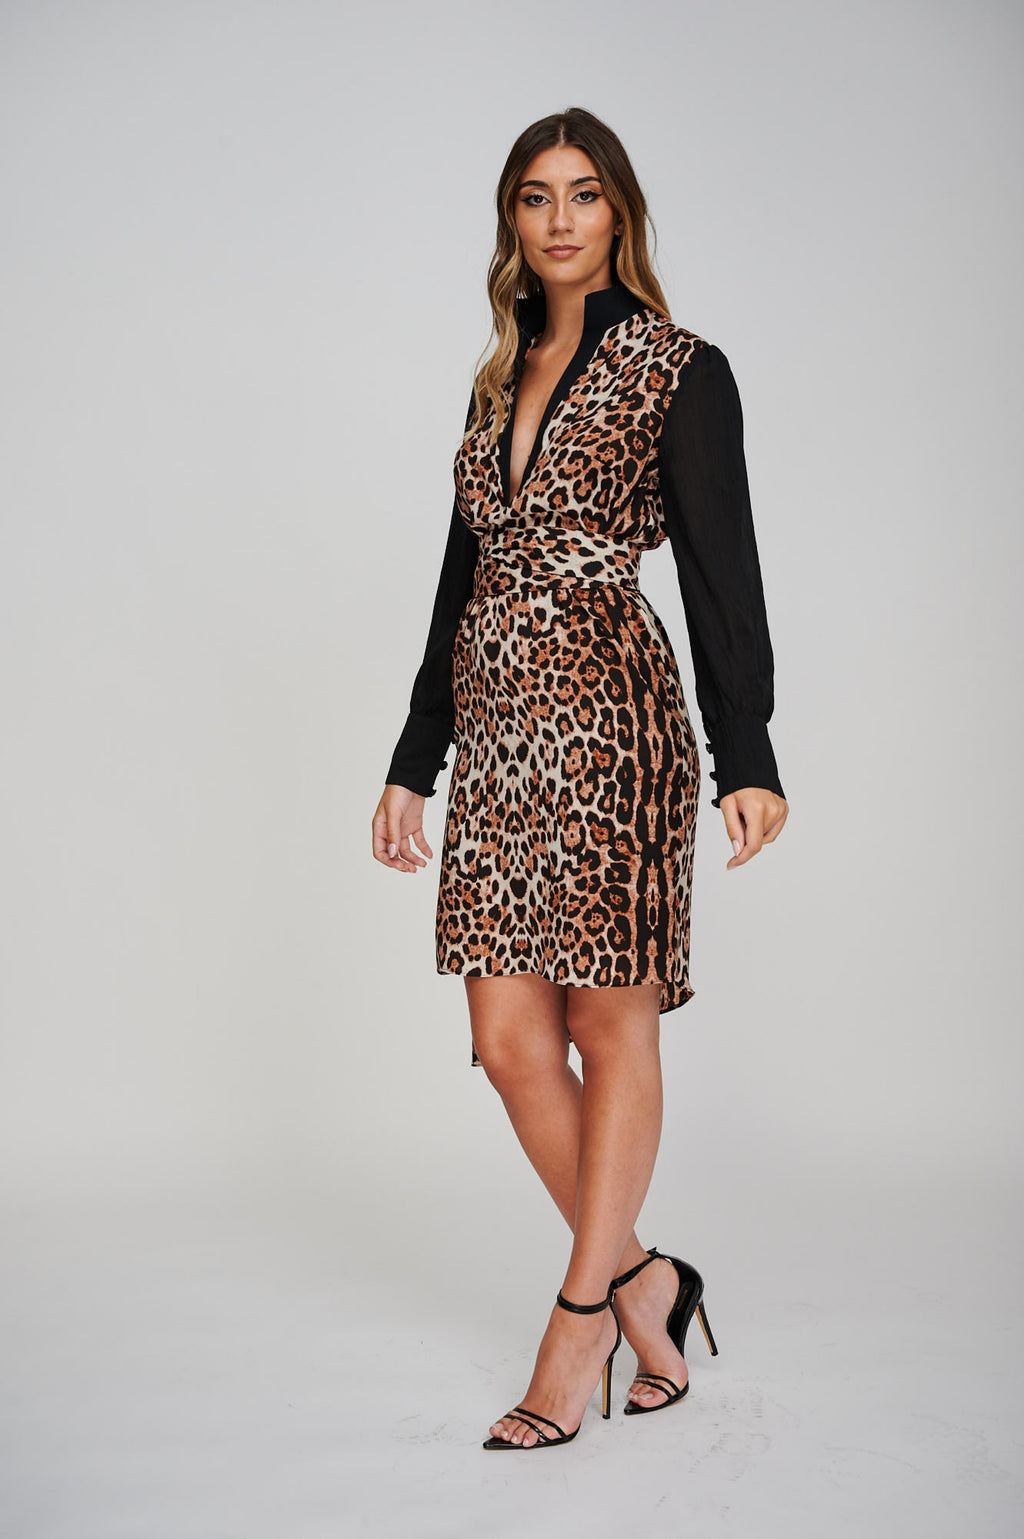 The AERO Asymmetric Leopard Print Dress